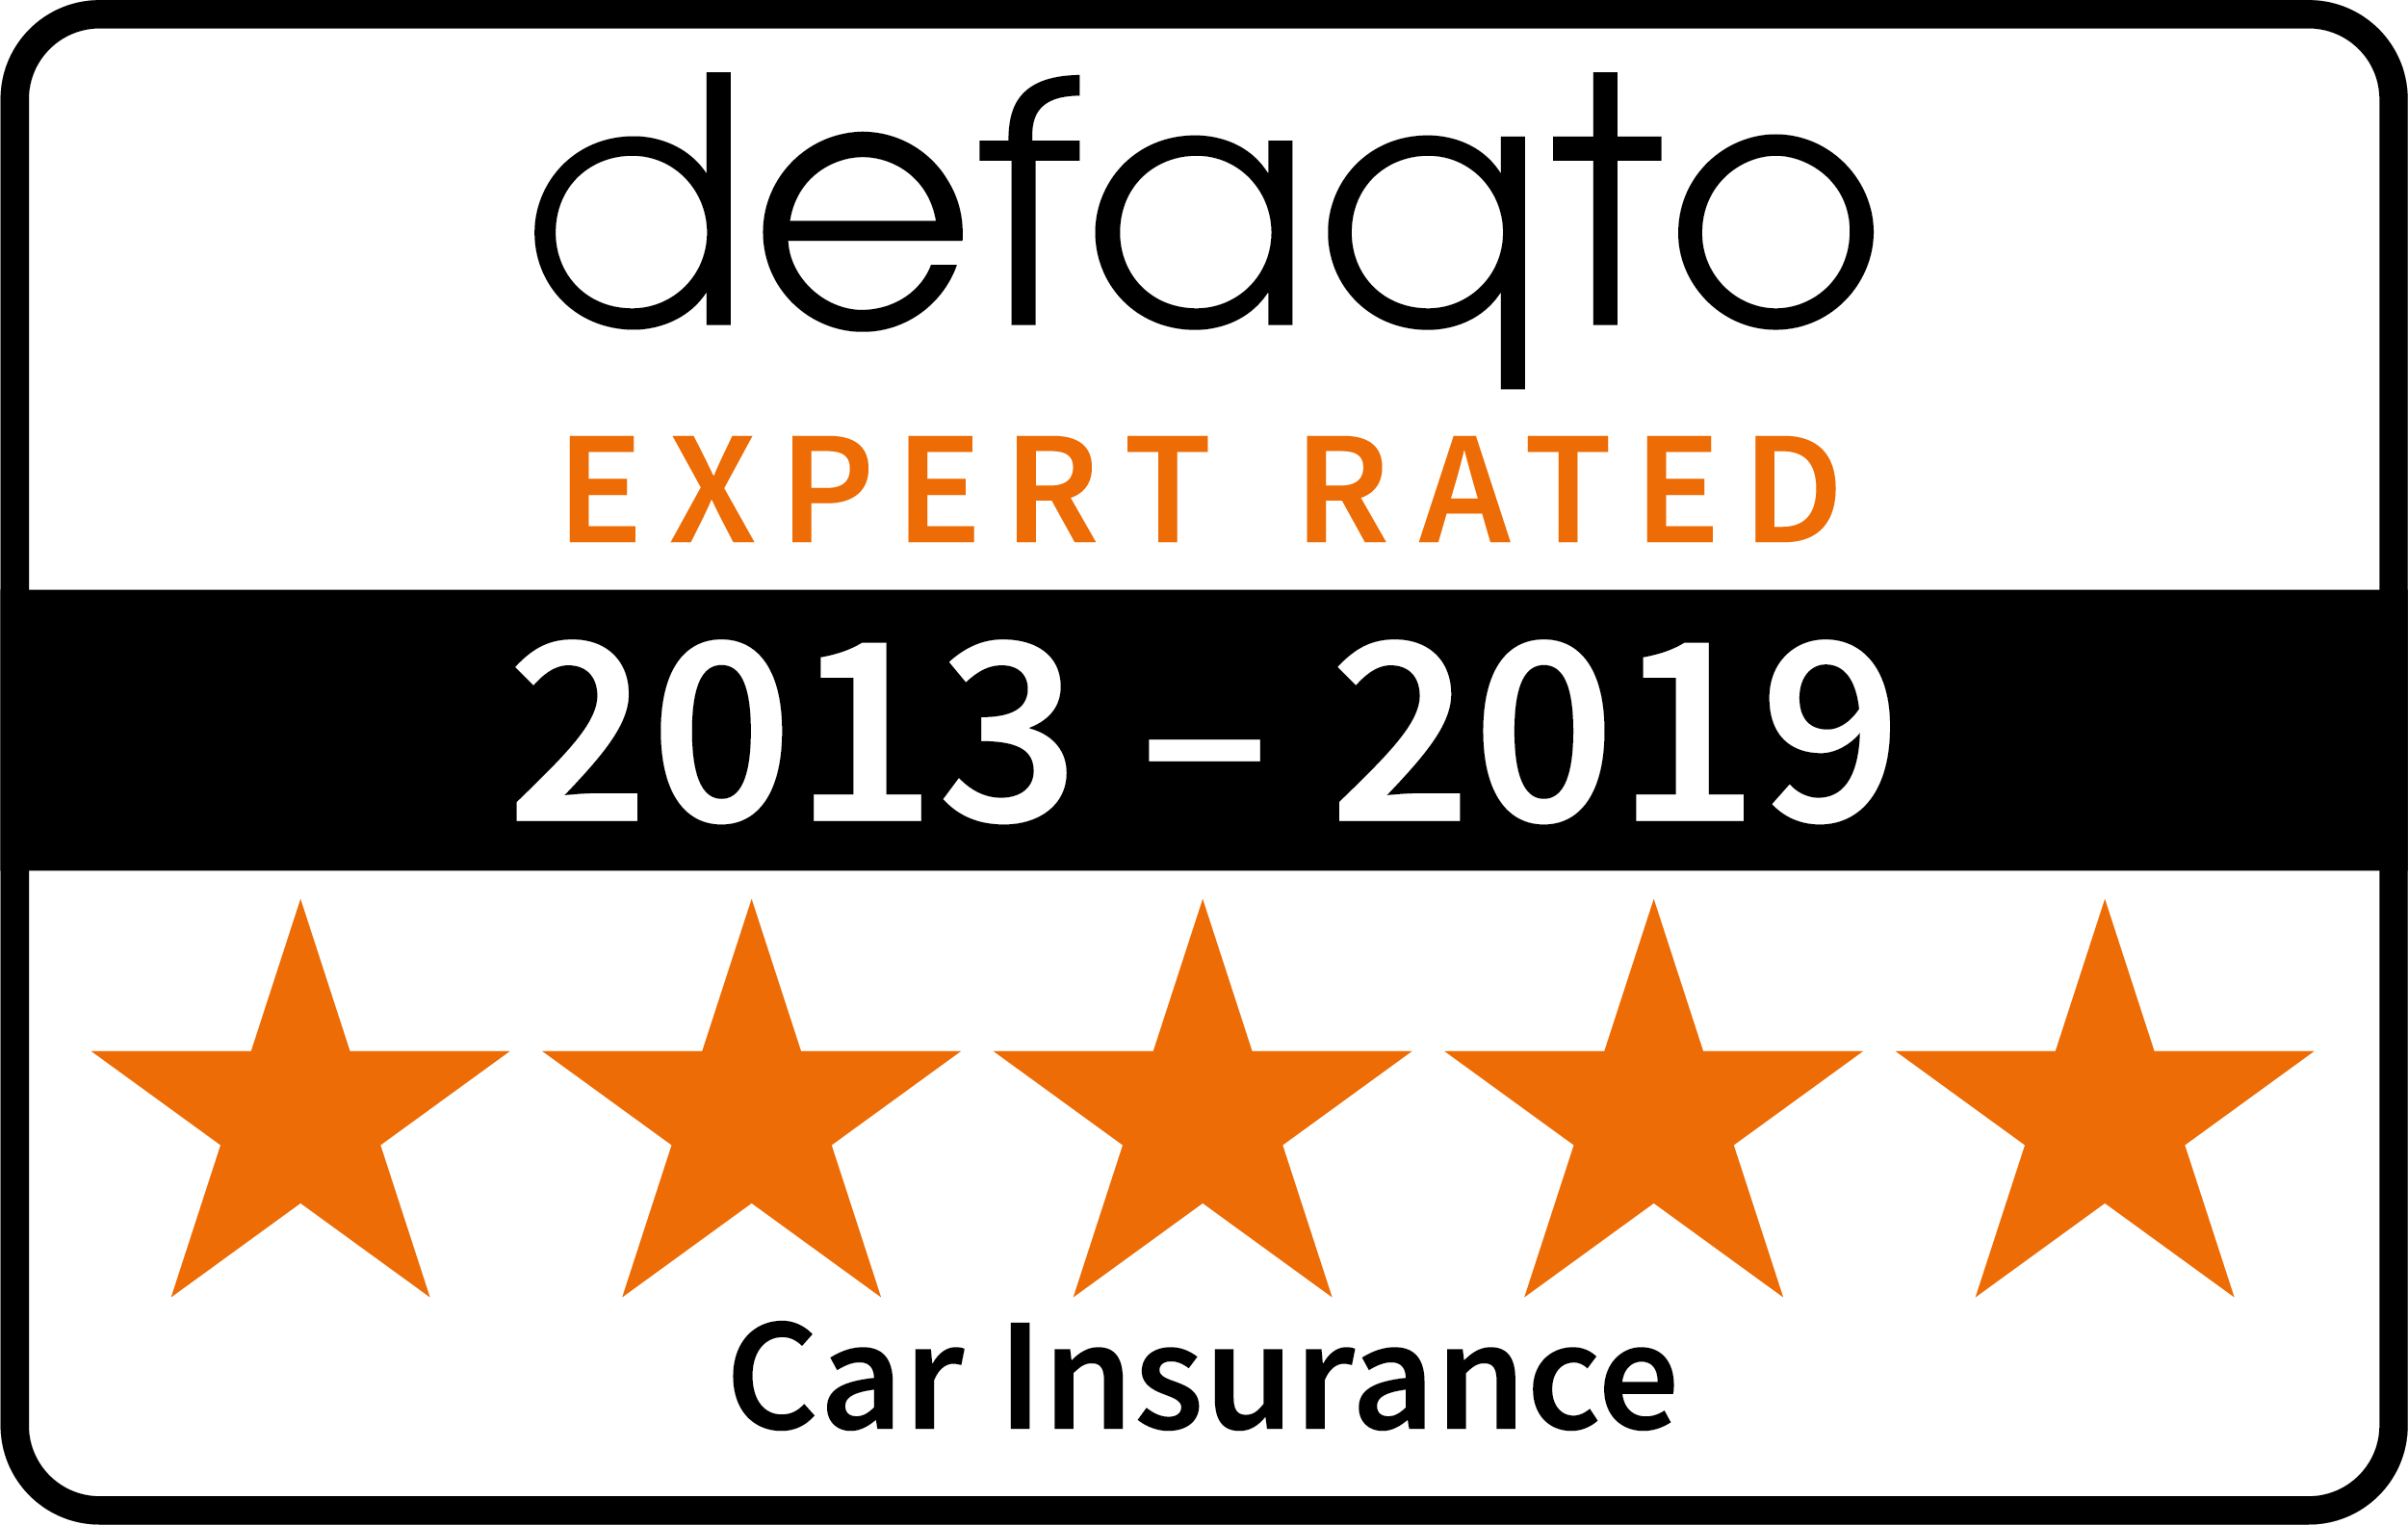 Defaqto 5 star rating 2013-2019 car insurance logo